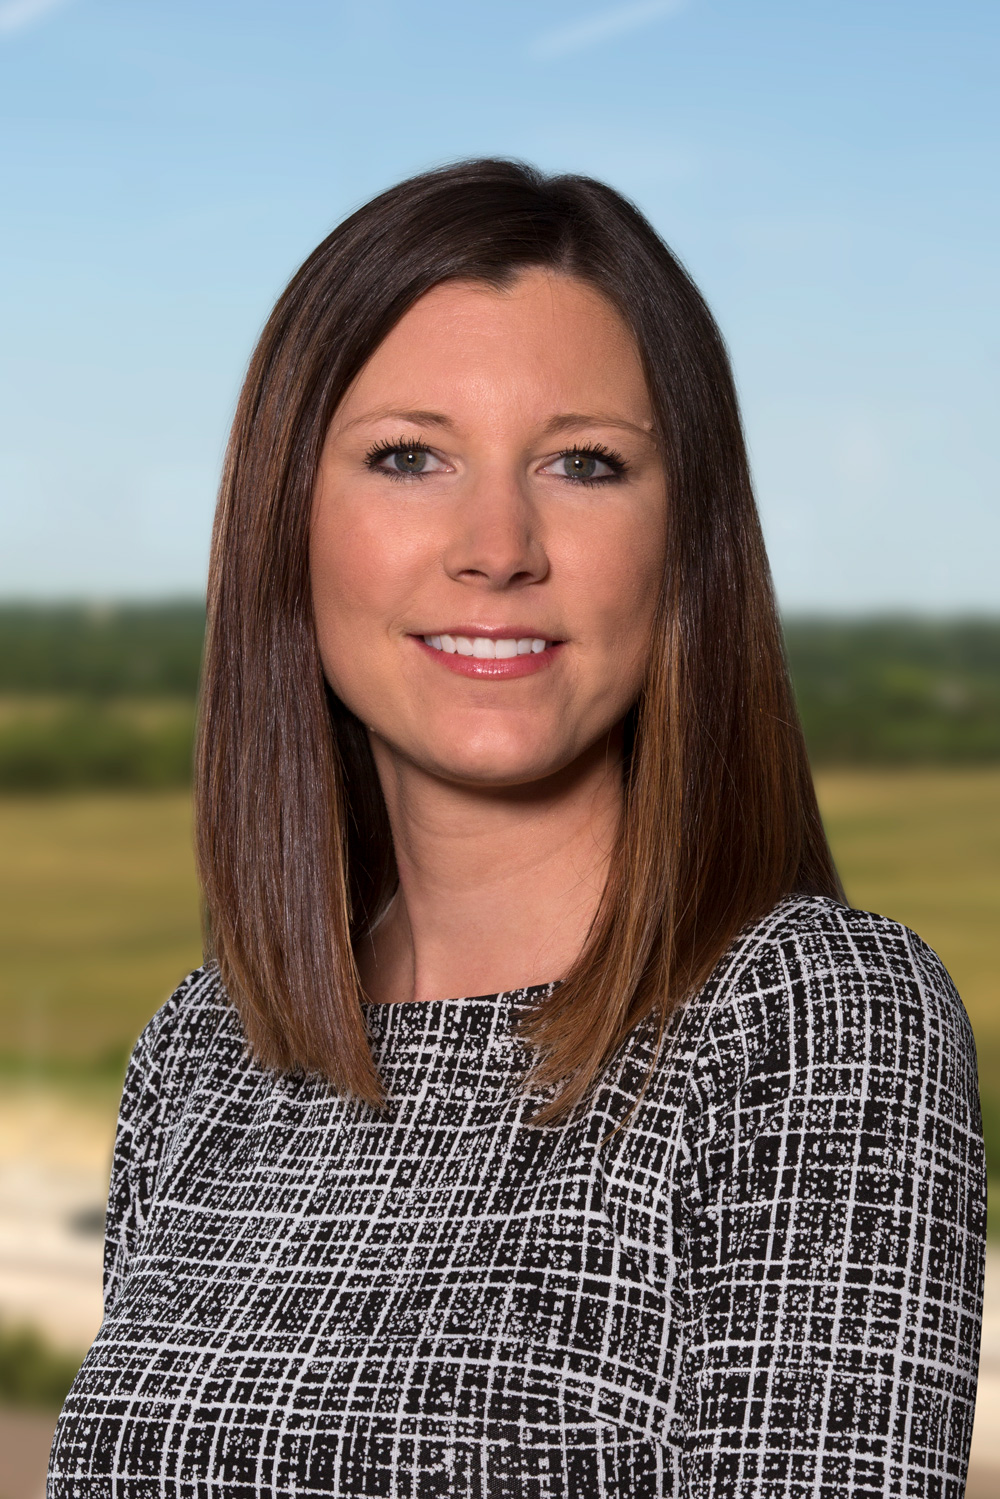 Nicole Zientek   Operations Specialist  Nicole Zientek is an Operations Specialist for Clearwater Capital Partners. She grew up in Johnsburg, Illinois and attended Johnsburg High School.